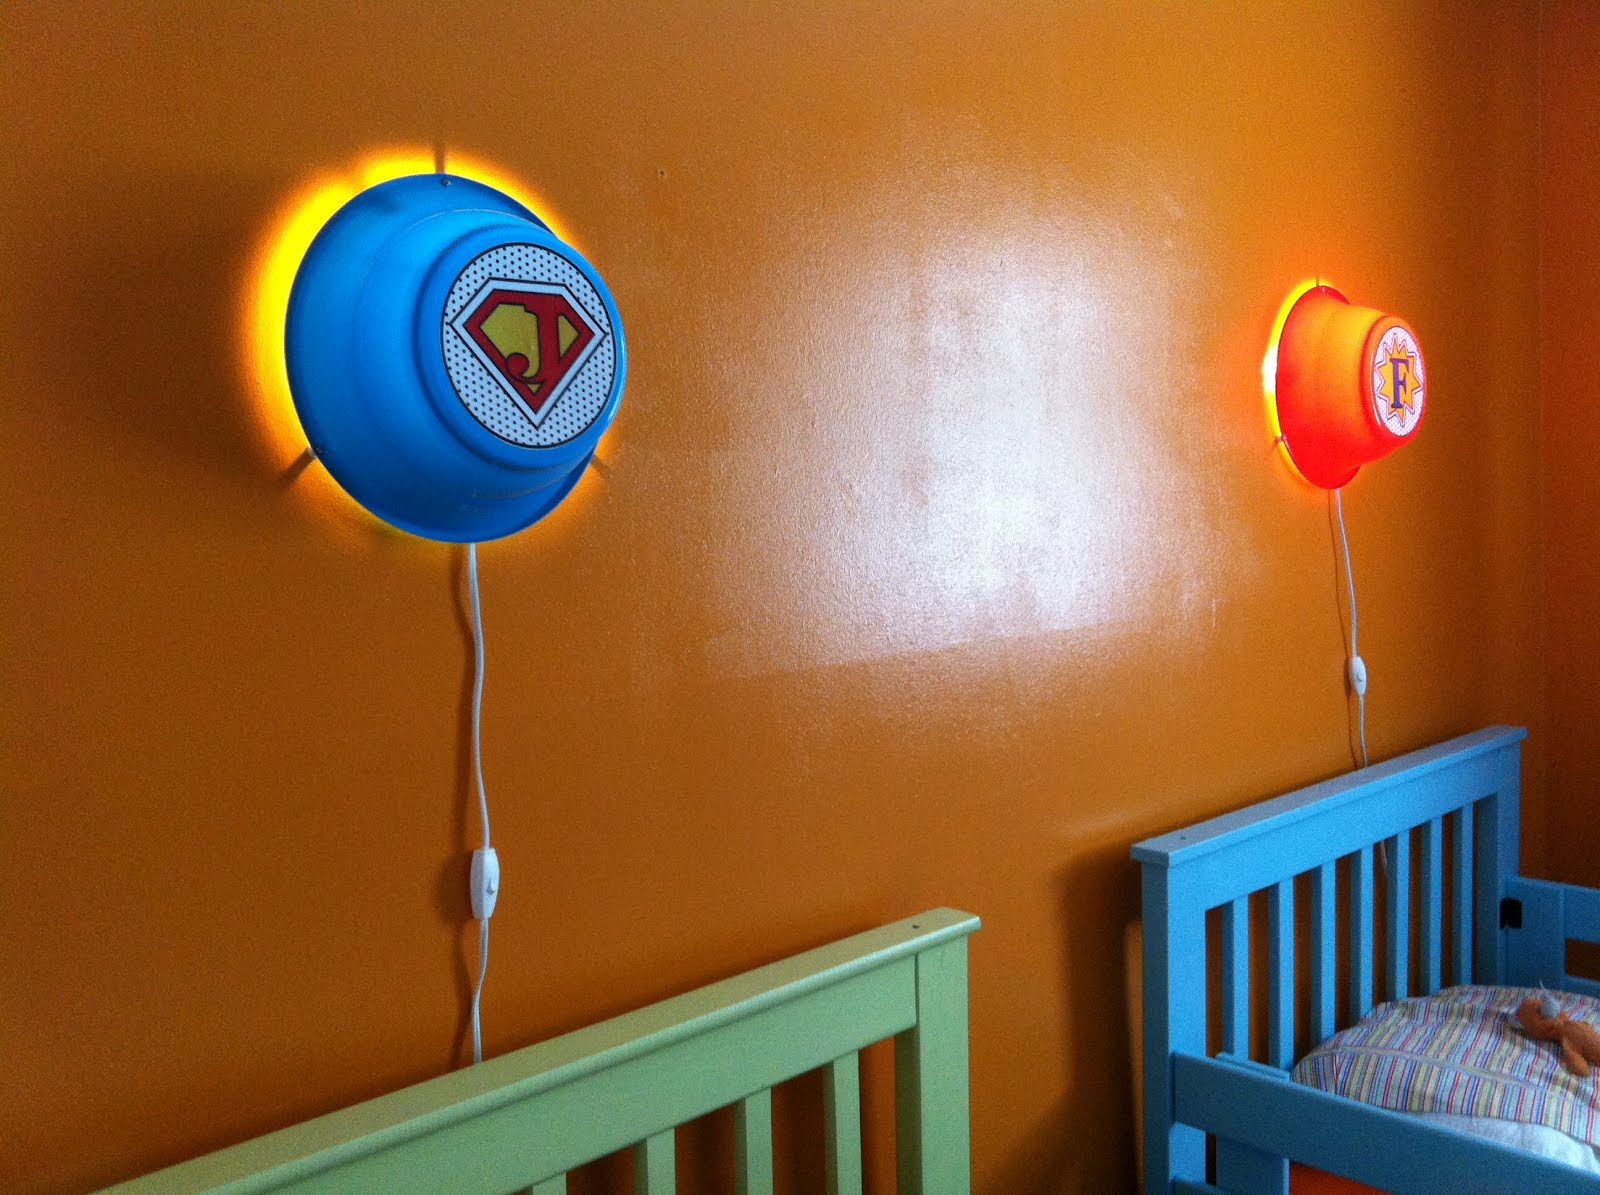 Childrens Wall Night Lights Smila Wall Lamps Into Custom Kids 39 Super Hero Night Lights